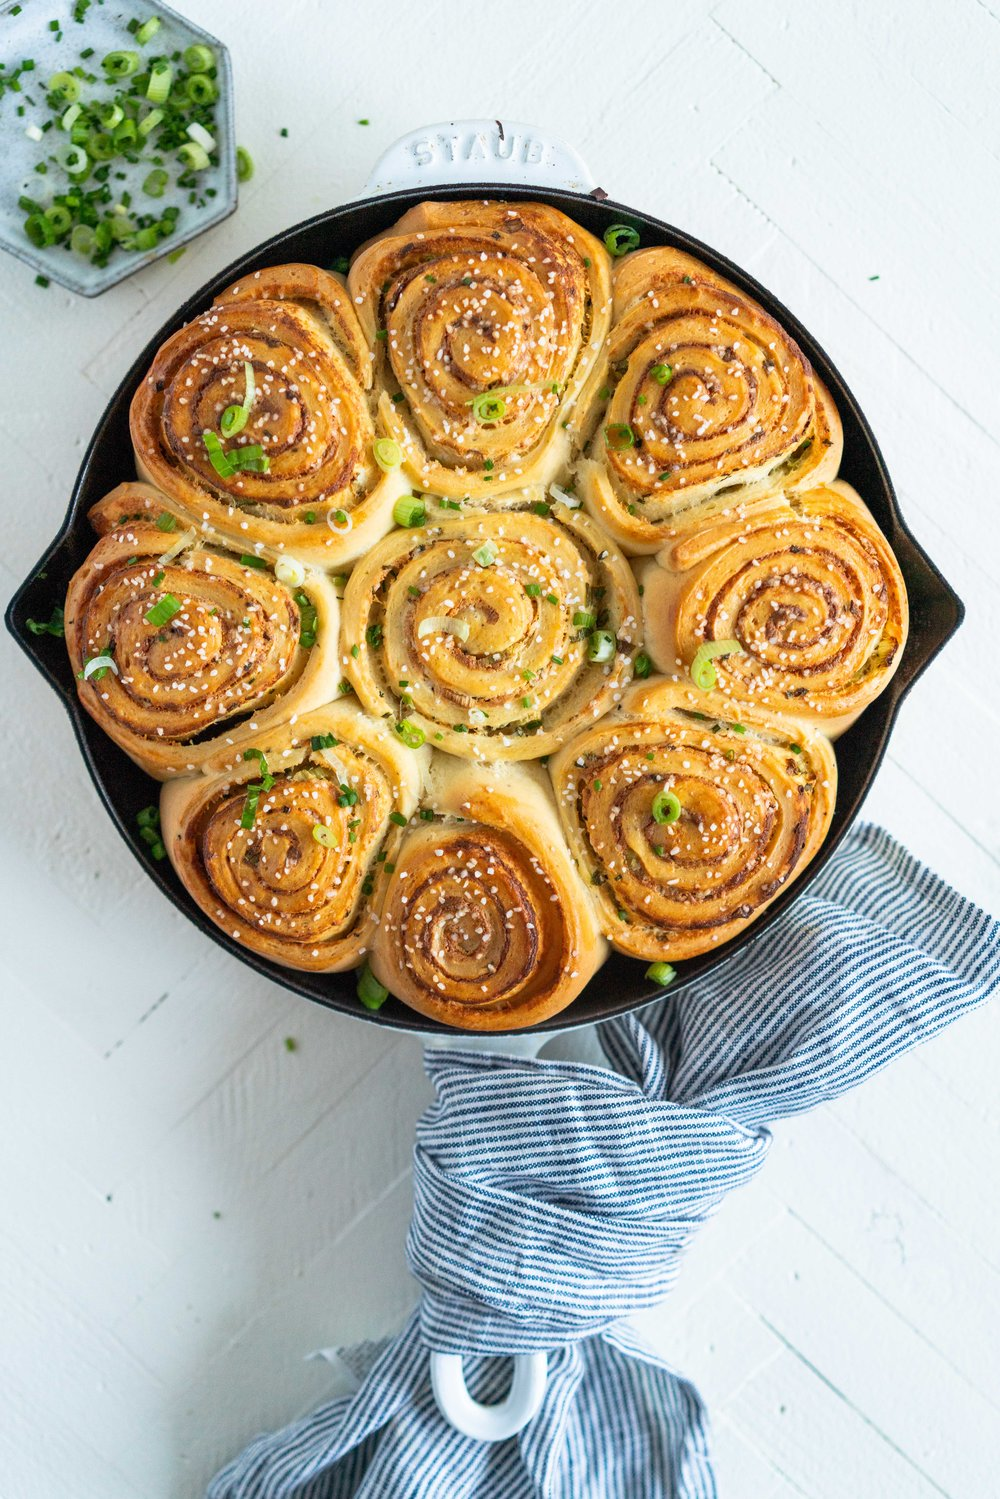 Cheese, Spring Onion, and Chive Brioche Buns - fluffy brioche is rolled out thin, then spread with a cheese sauce filling, sprinkled with spring onion and chives, and rolled up into a tight spiral. It is then cut up into buns, snuggled into a skillet, and baked to golden perfection. The perfect savoury bun! #cheesebuns #cheeserolls #cheeseandchive